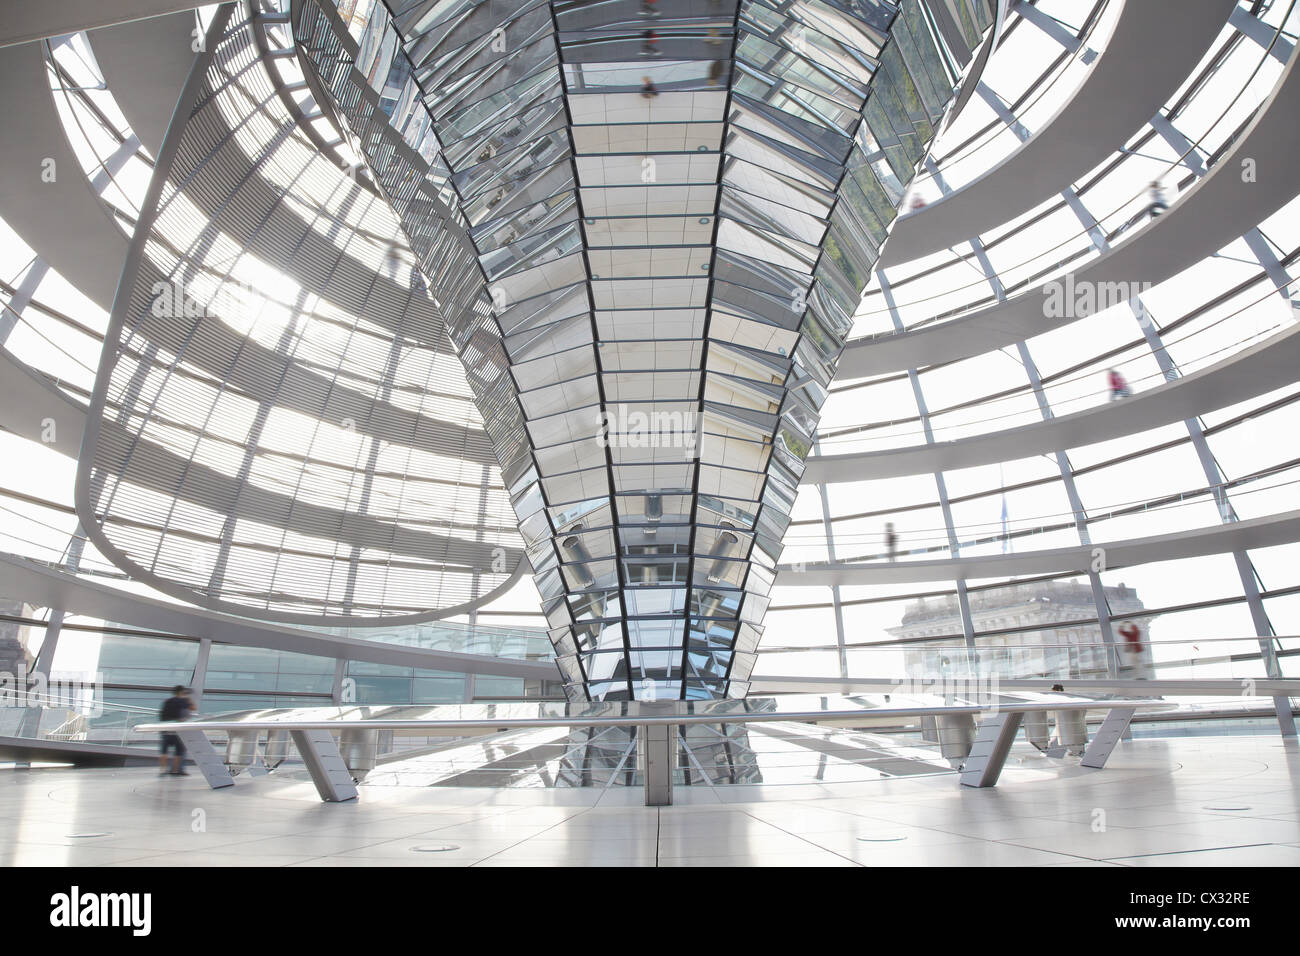 Interior Berlin Reichstag Dome Interior Berlin Stock Photo Royalty Free